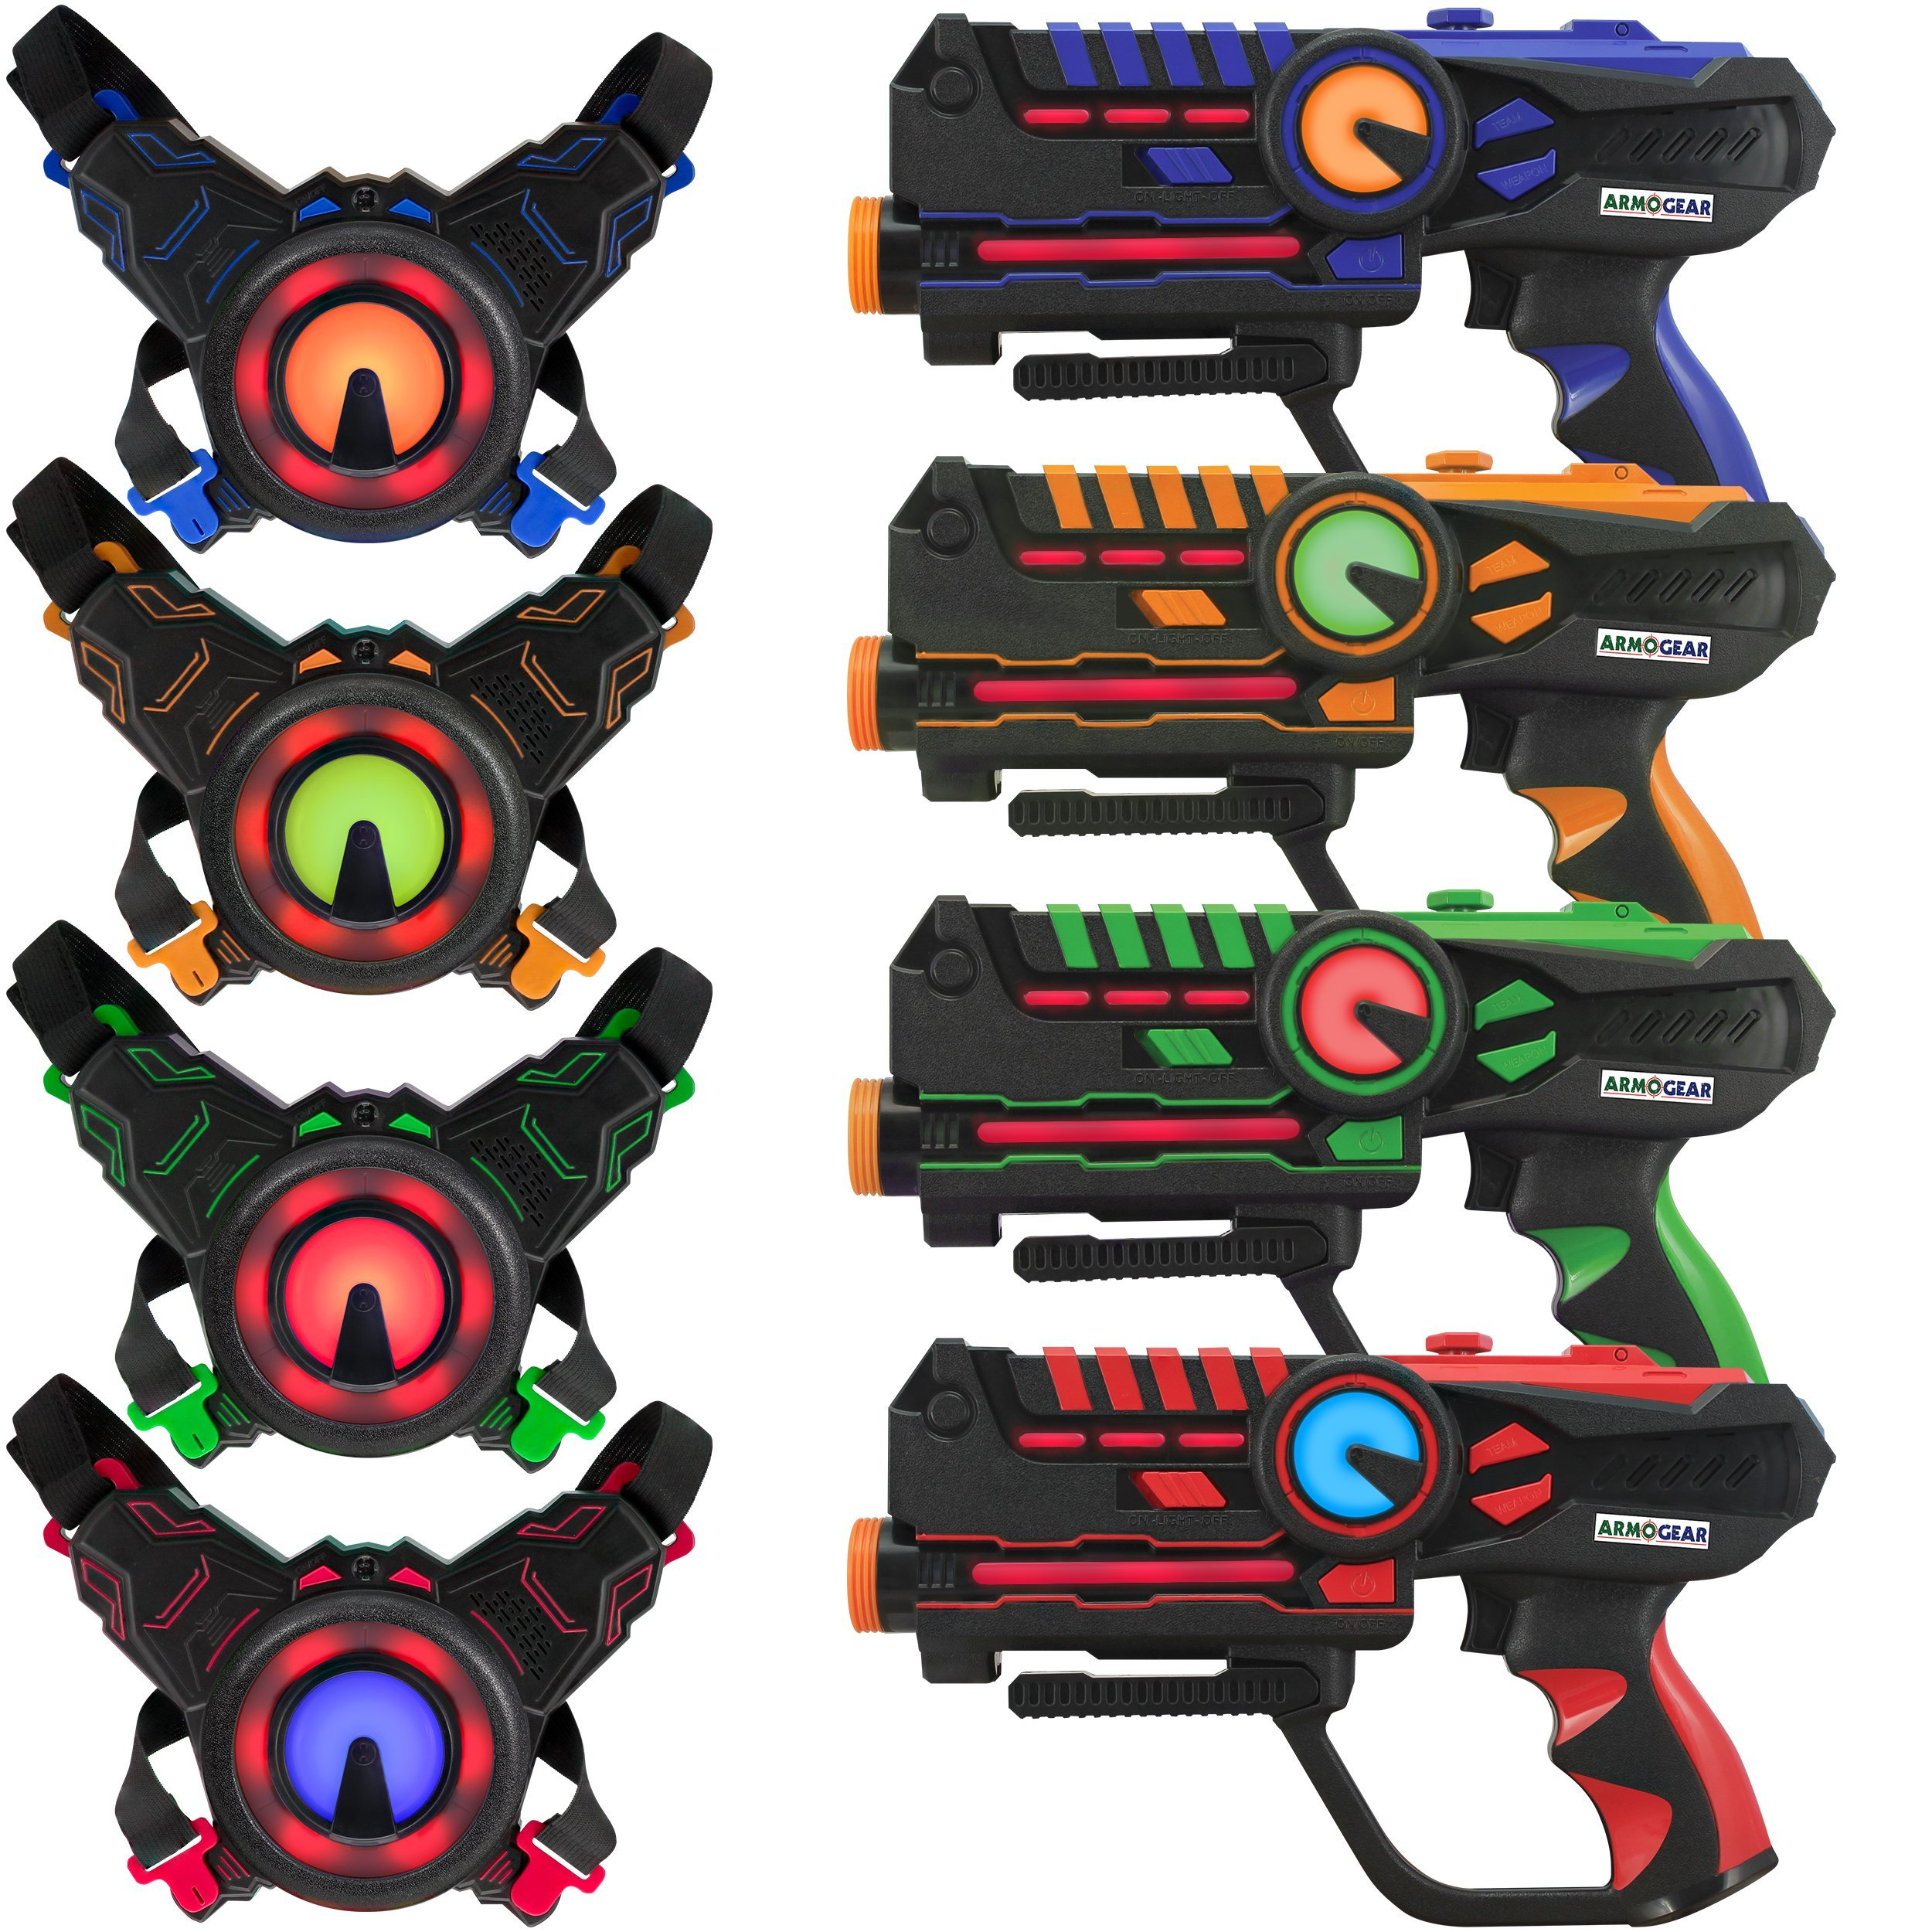 ArmoGear Infrared Laser Tag Guns and Vests - Laser Battle Mega Pack Set of 4 - Infrared 0.9mW (Renewed) by ArmoGear